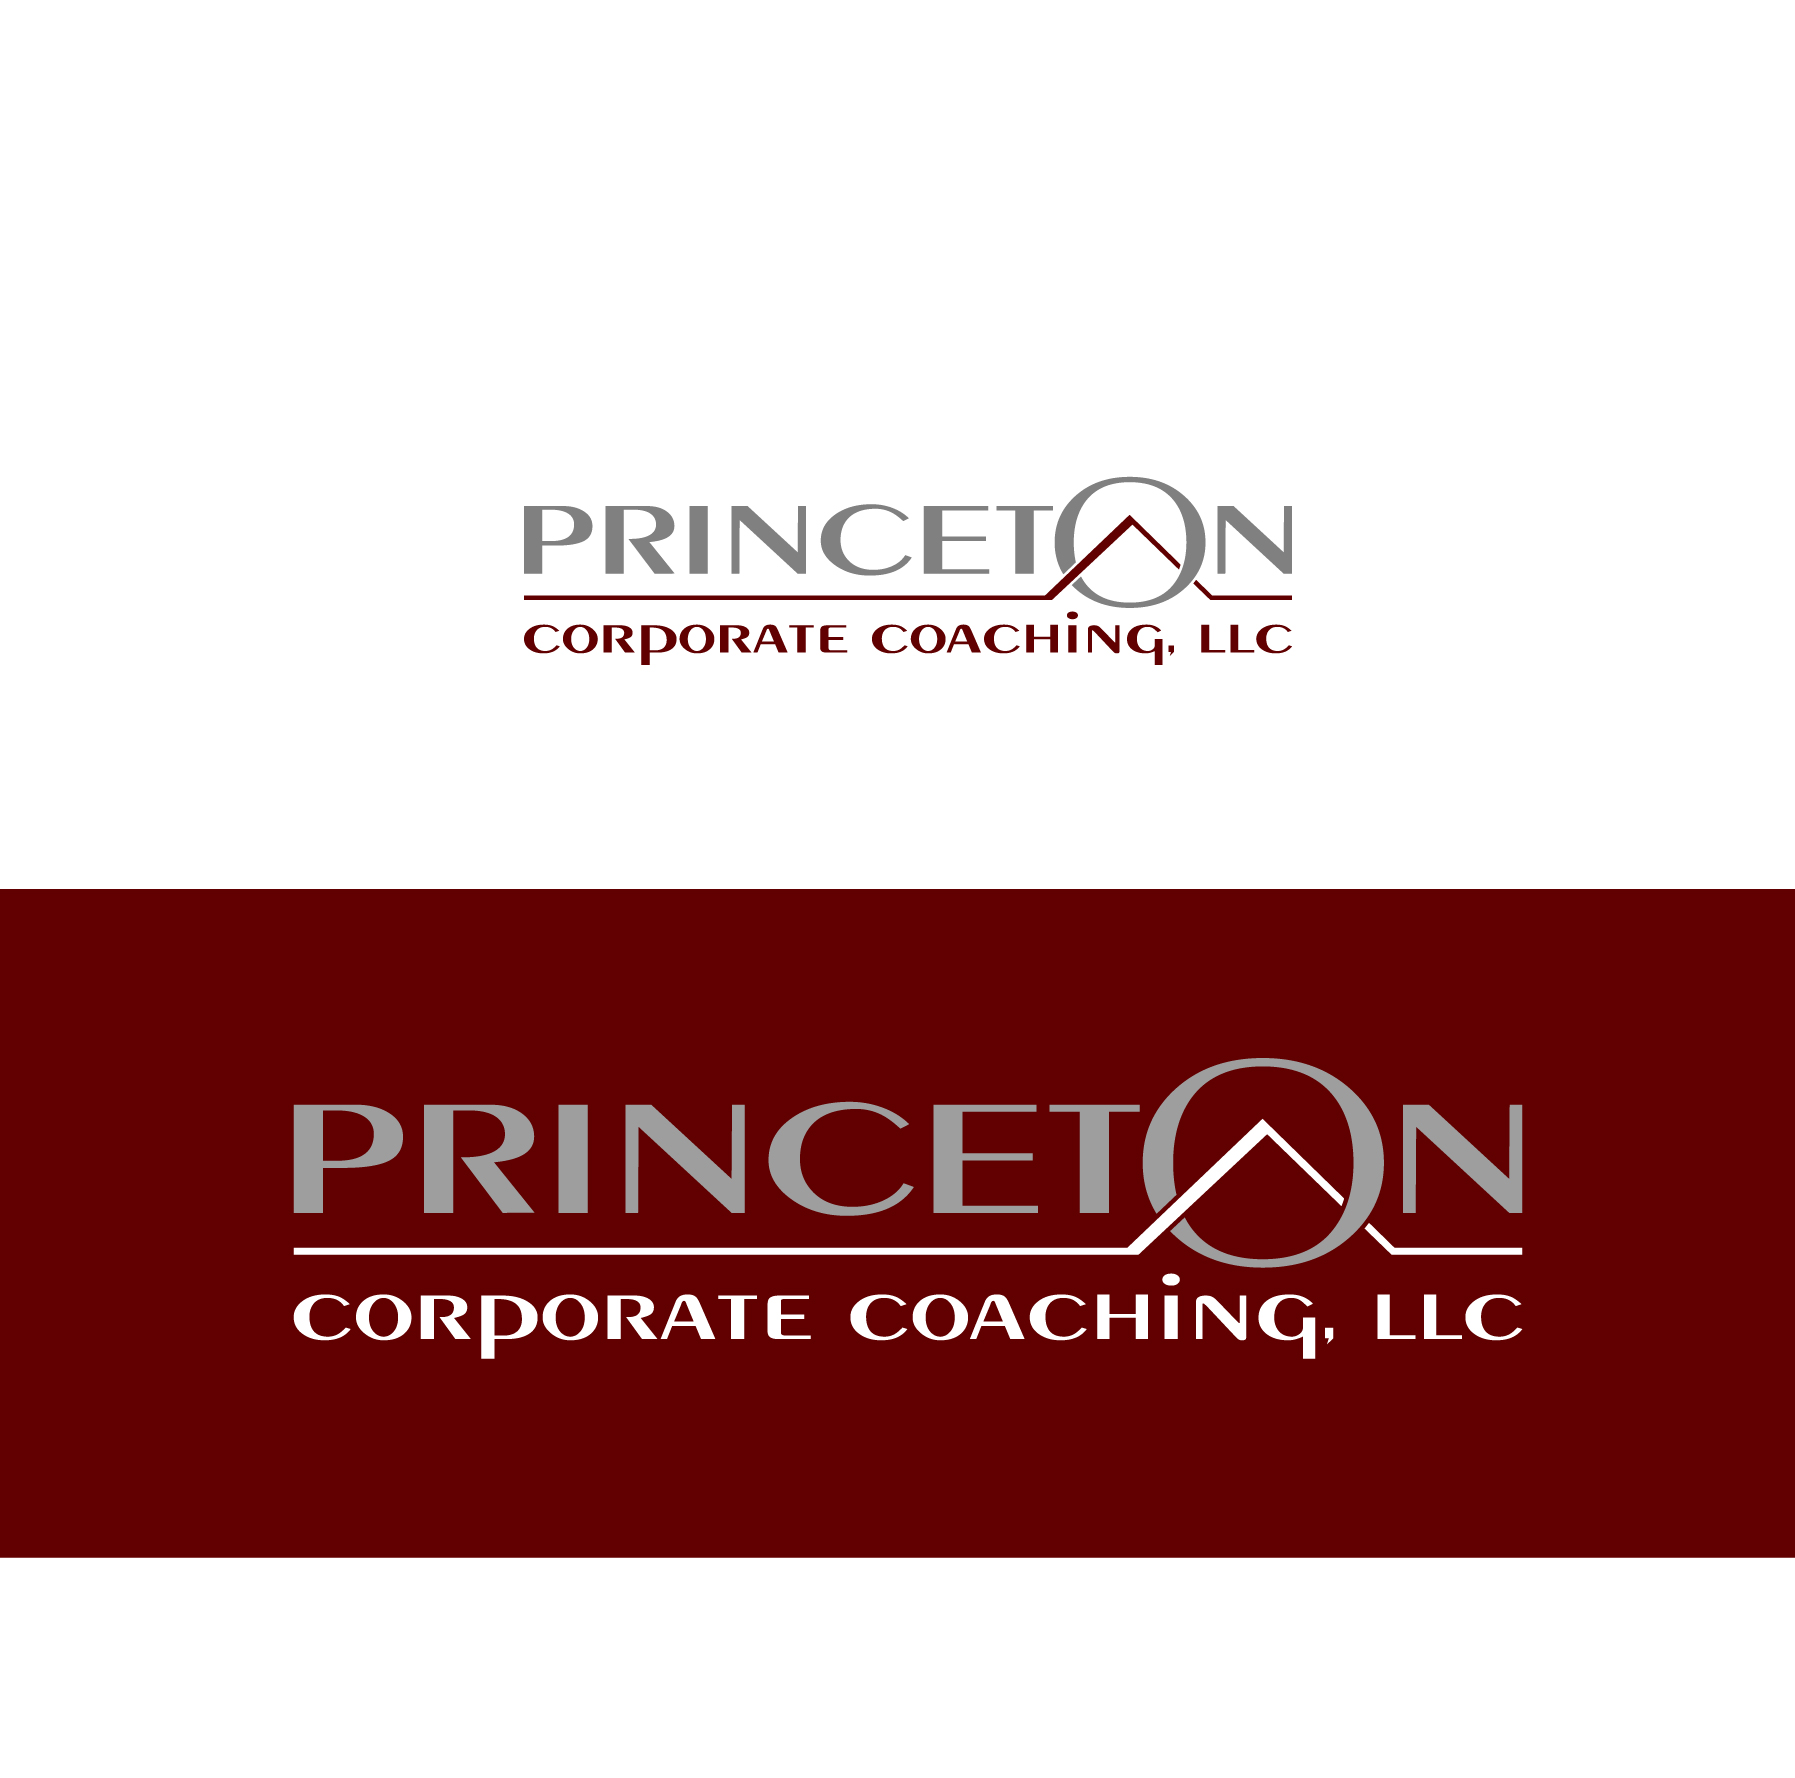 Logo Design by Wilfredo Mendoza - Entry No. 196 in the Logo Design Contest Unique Logo Design Wanted for Princeton Corporate Coaching, LLC.